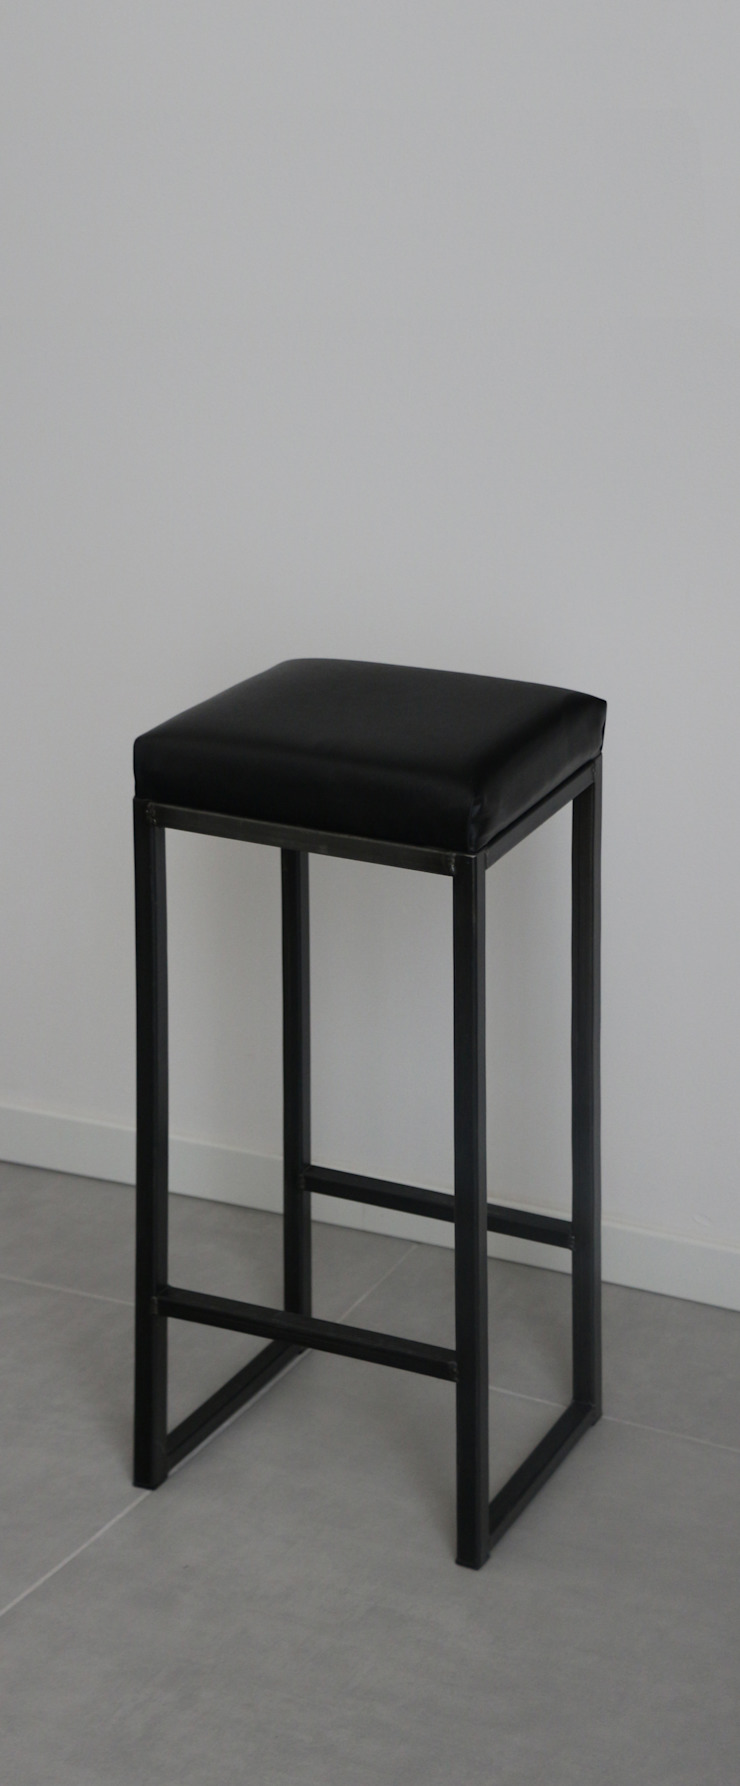 CHIARA MARCHIONNI ARCHITECT Living roomStools & chairs Iron/Steel Black